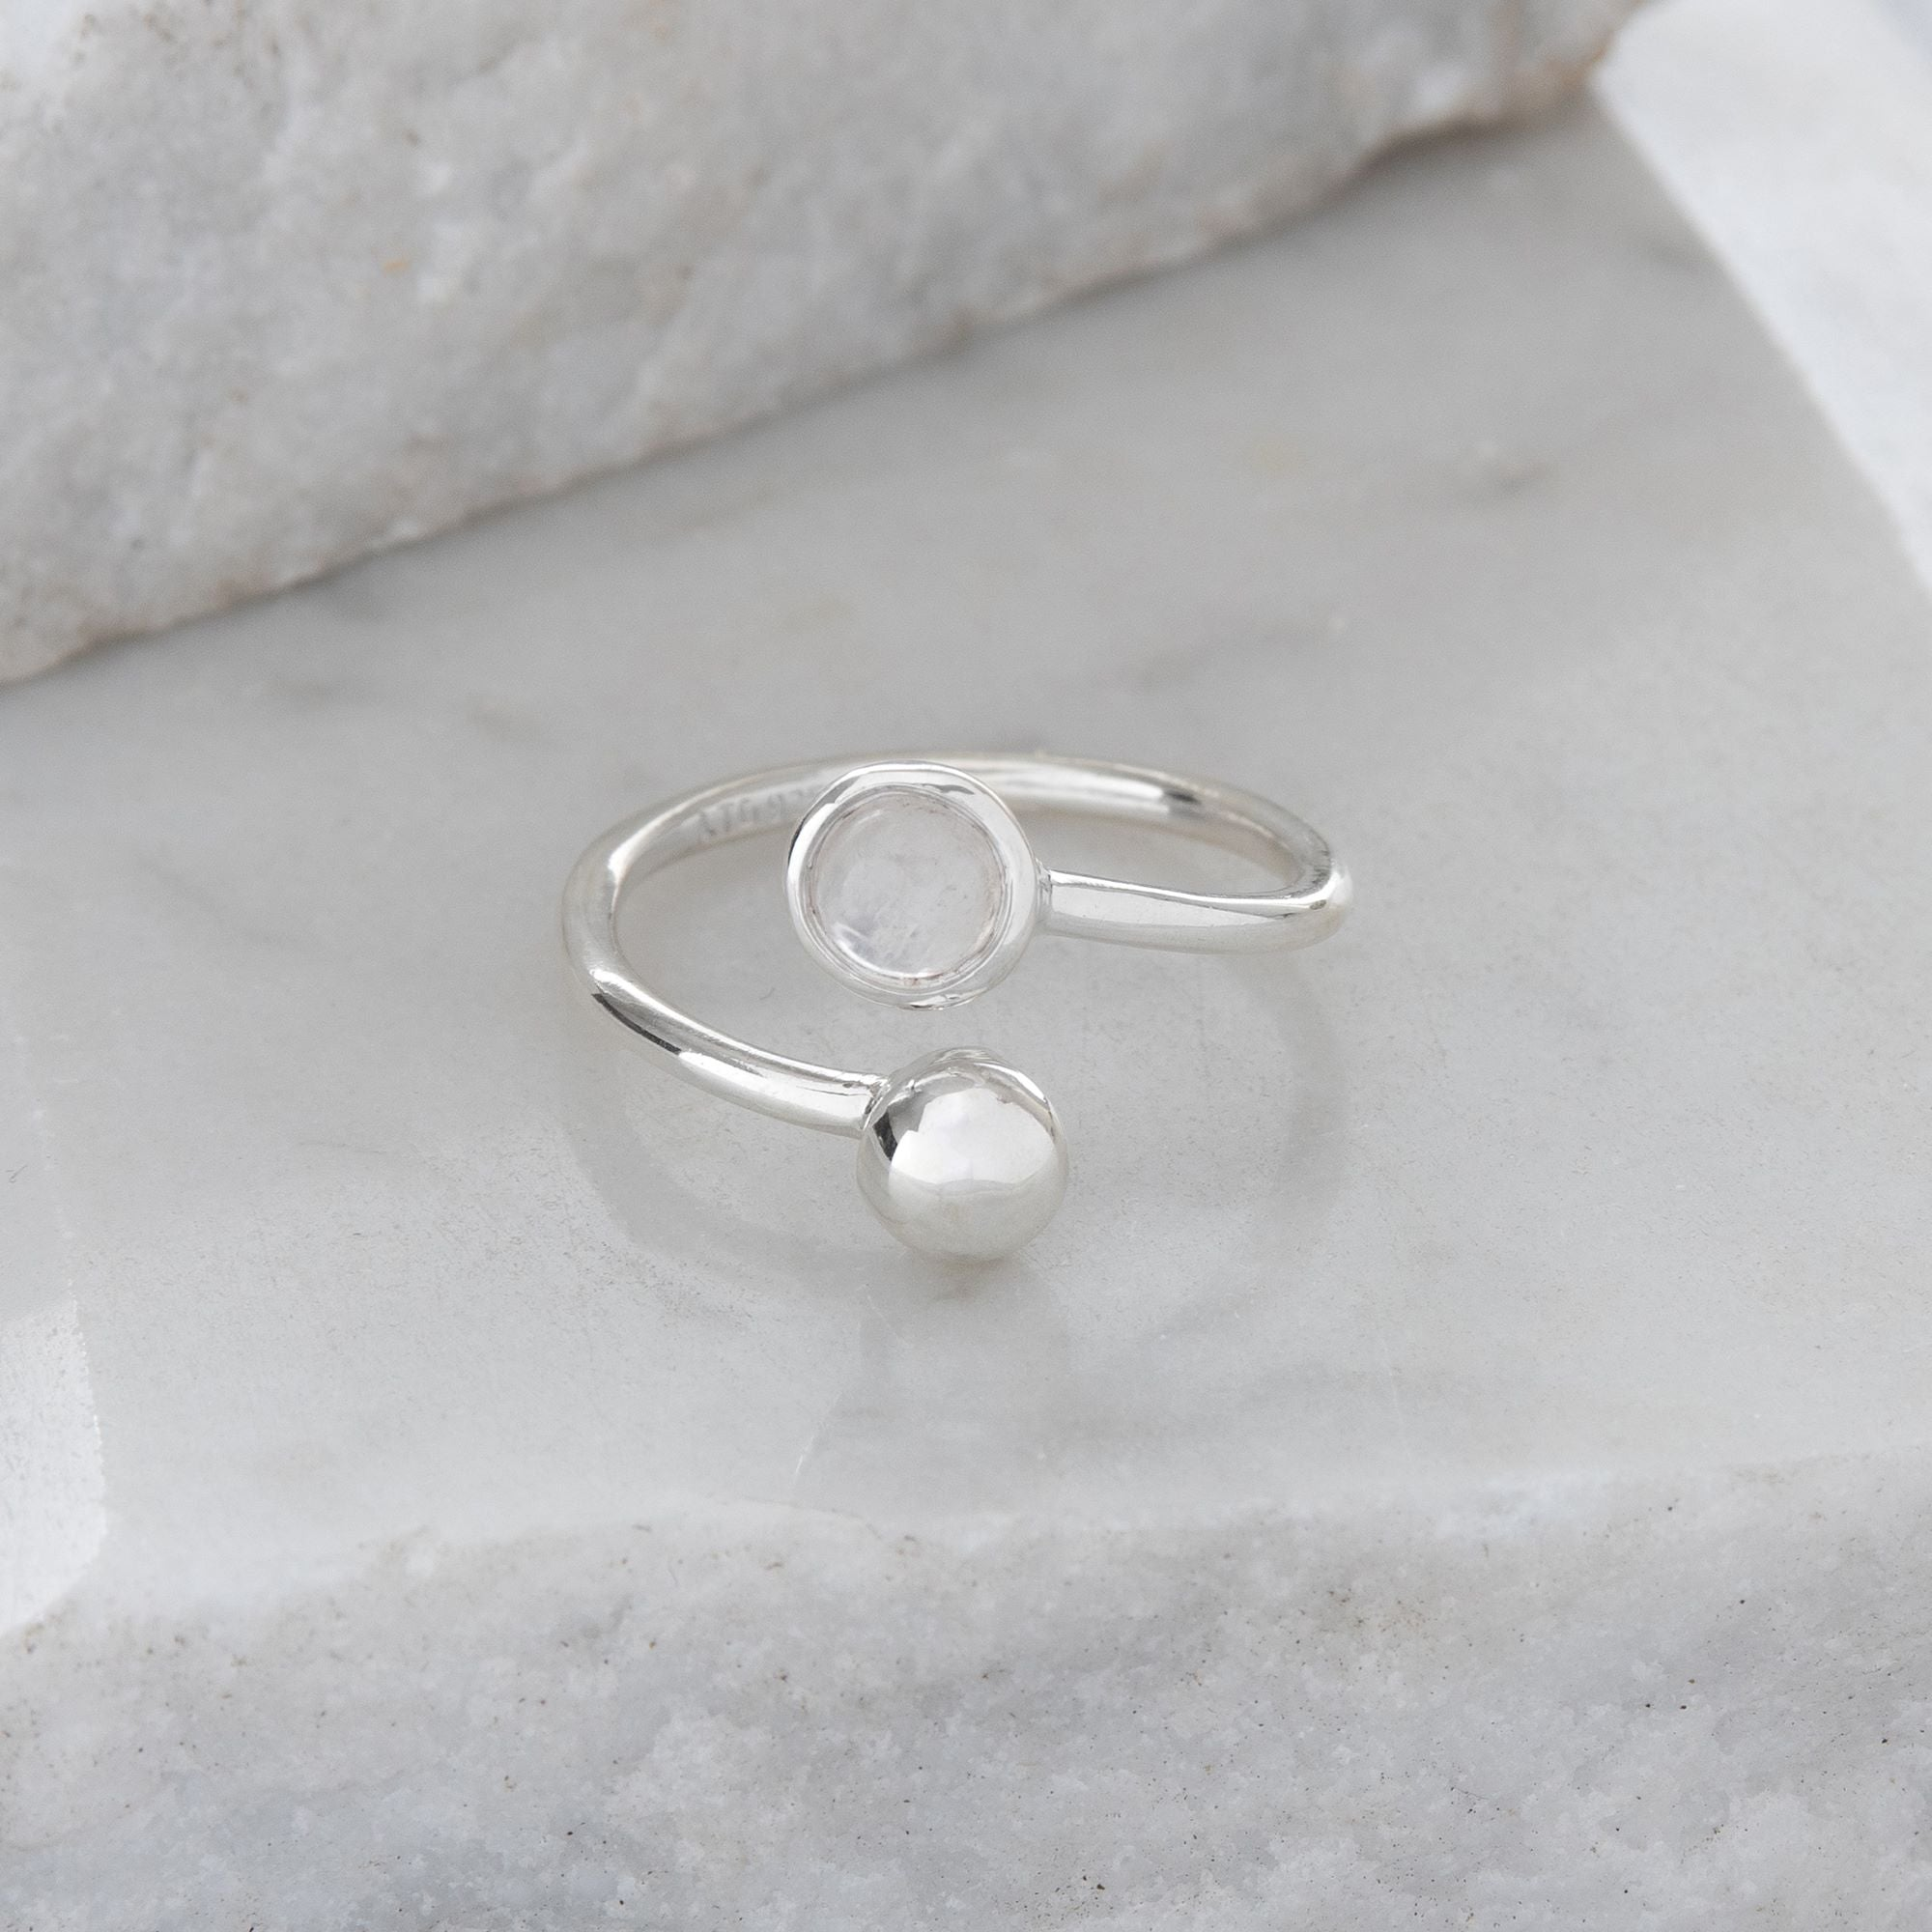 Adjustable Birthstone Ring June: Sterling Silver and Moonstone